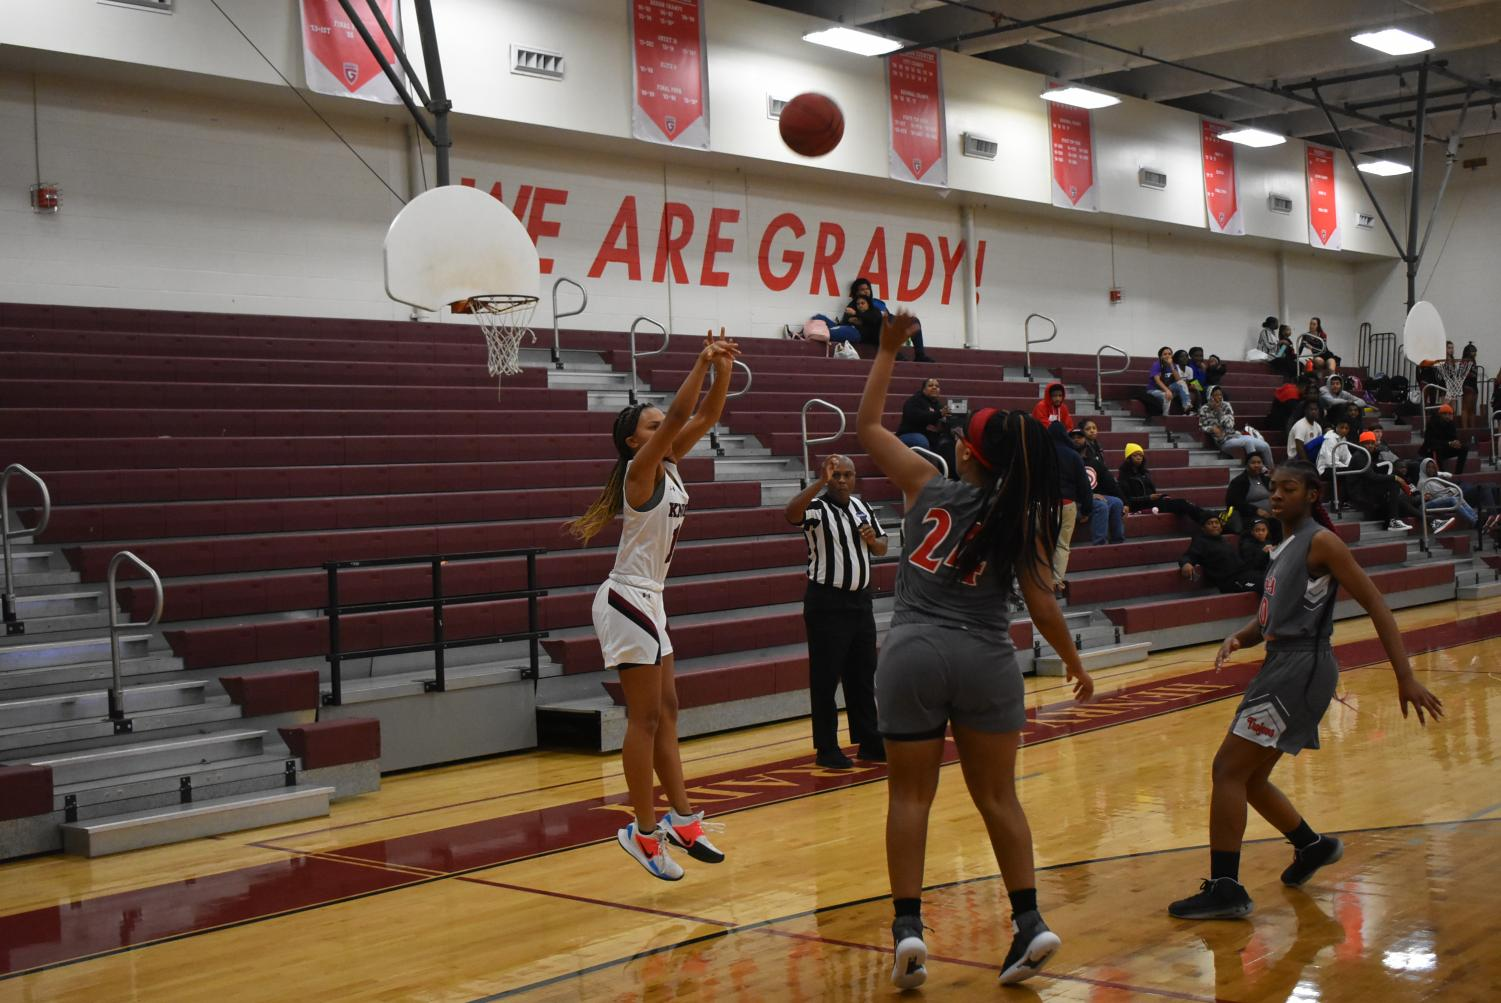 """Grady should unite all sports teams under the sole mascot, the Knights, and eliminate """"Lady"""" from team titles."""